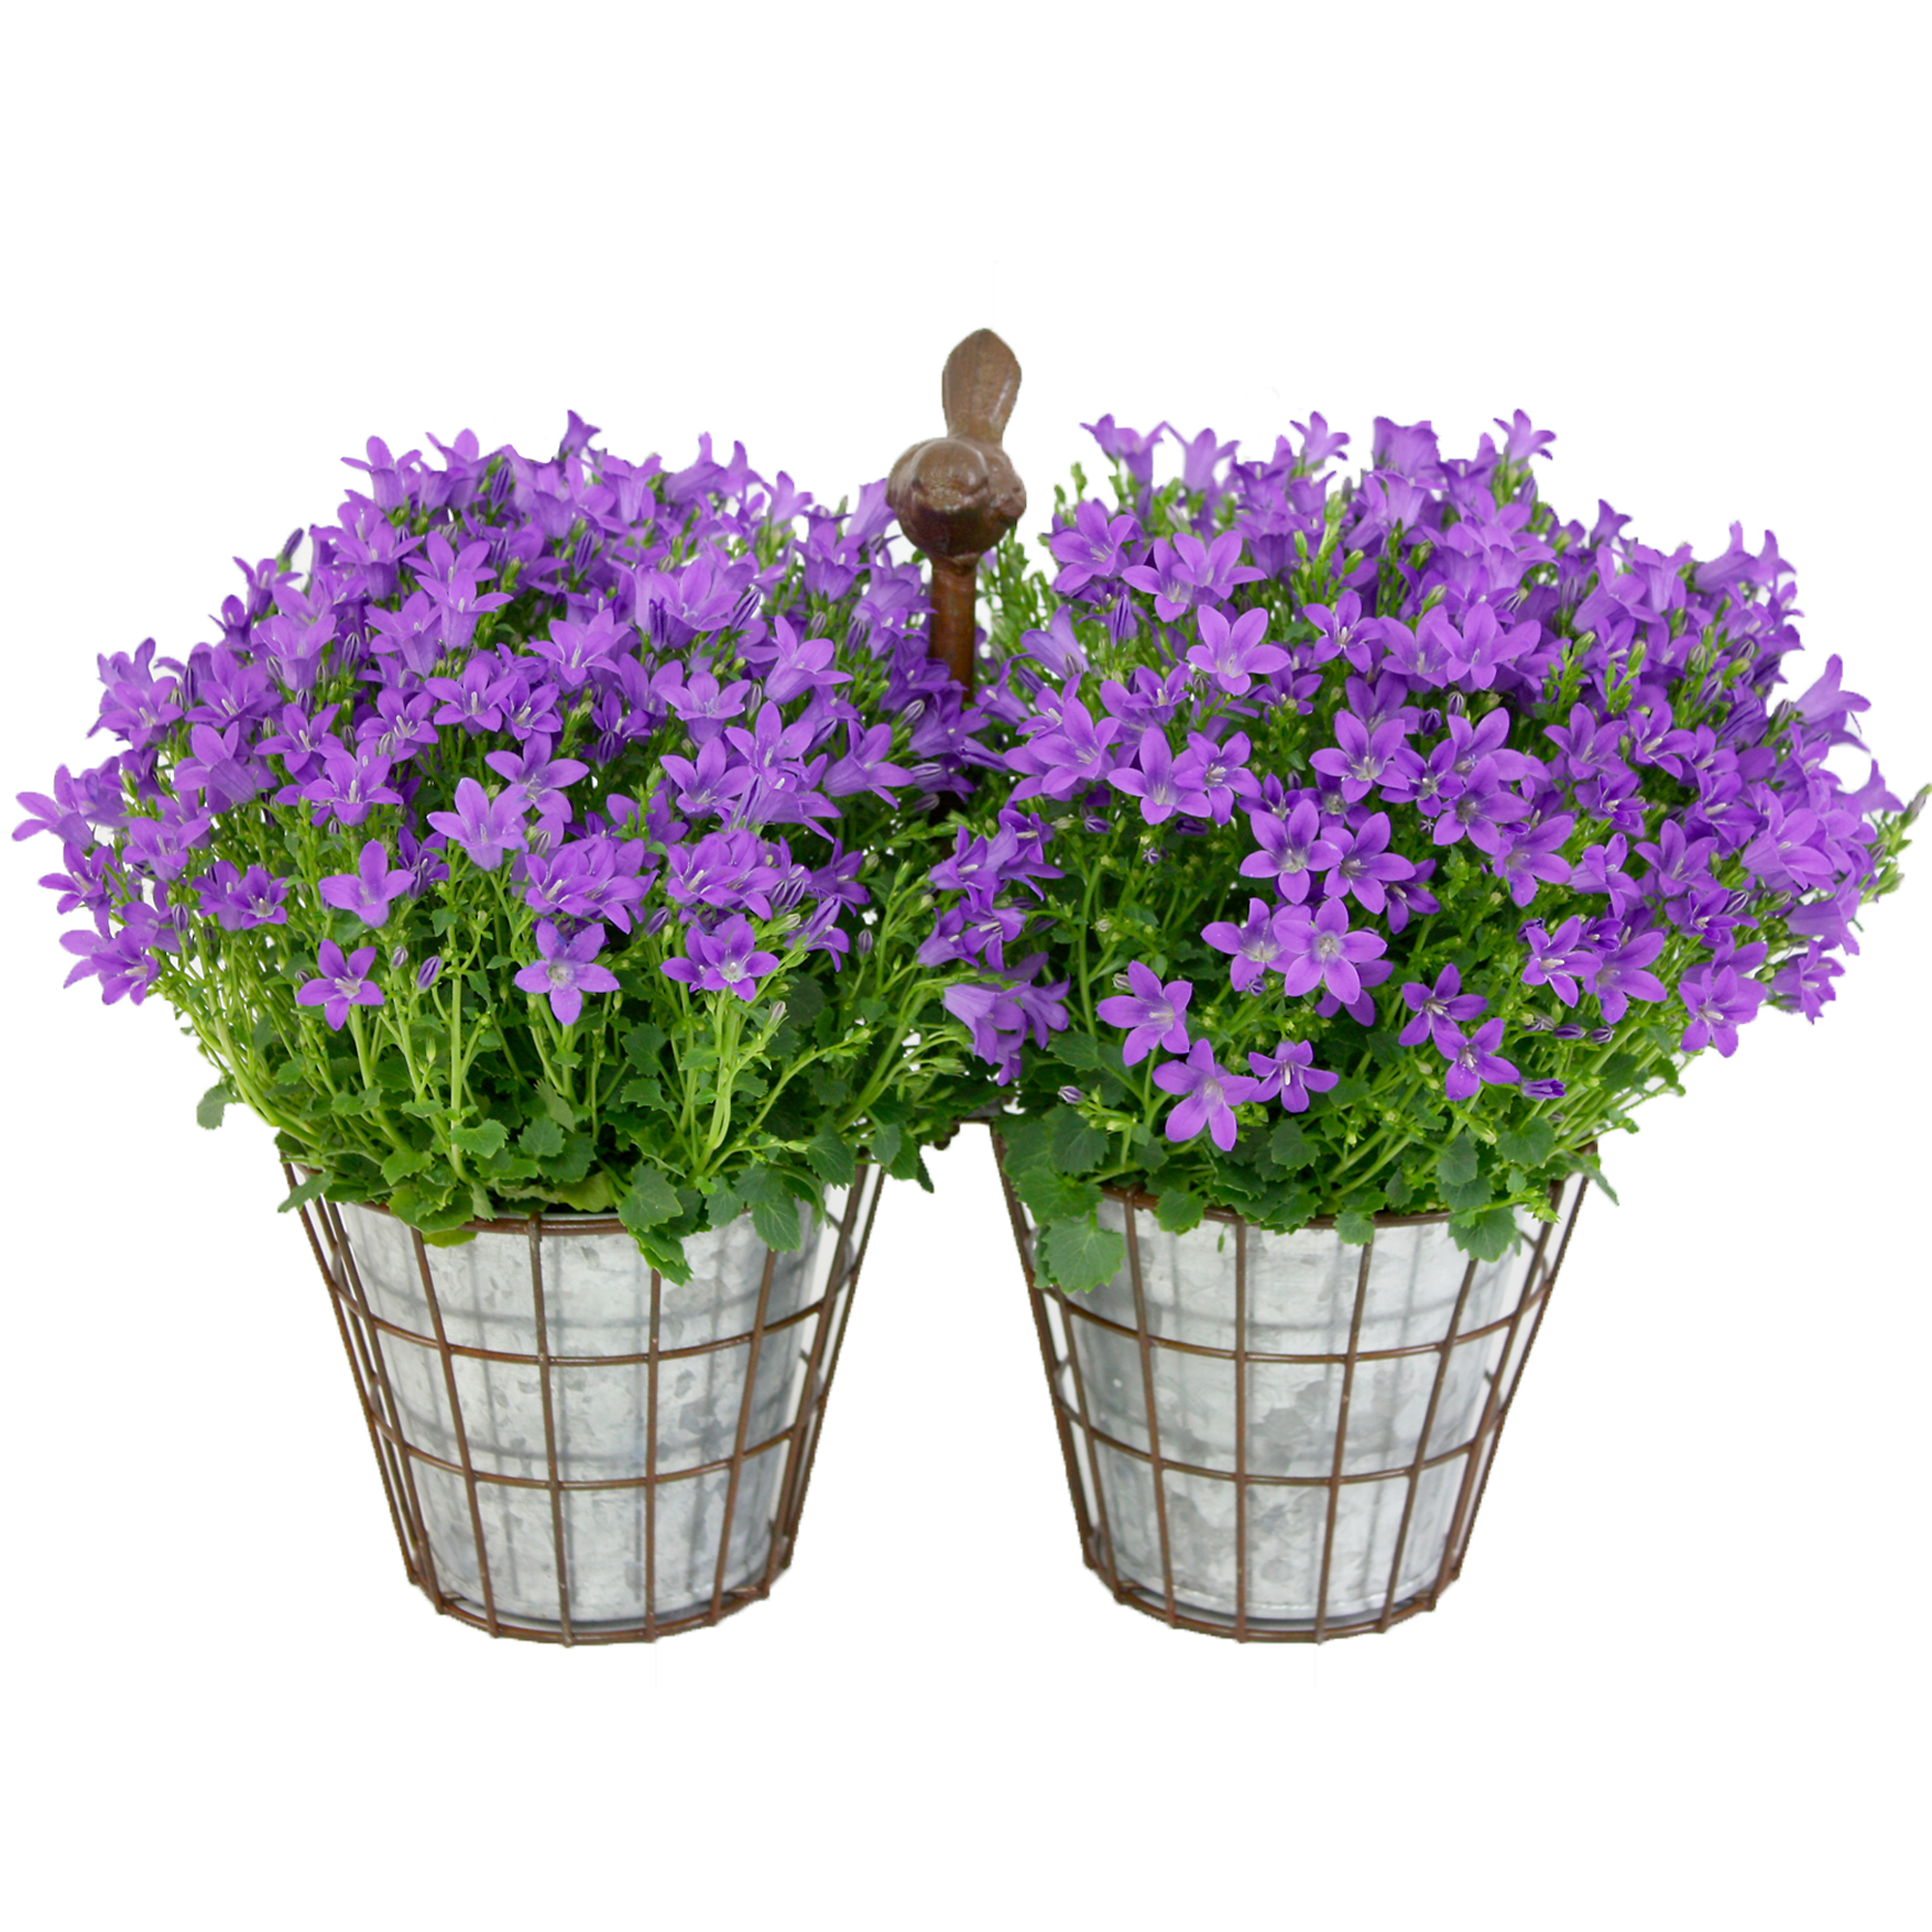 Purple canula plant gift